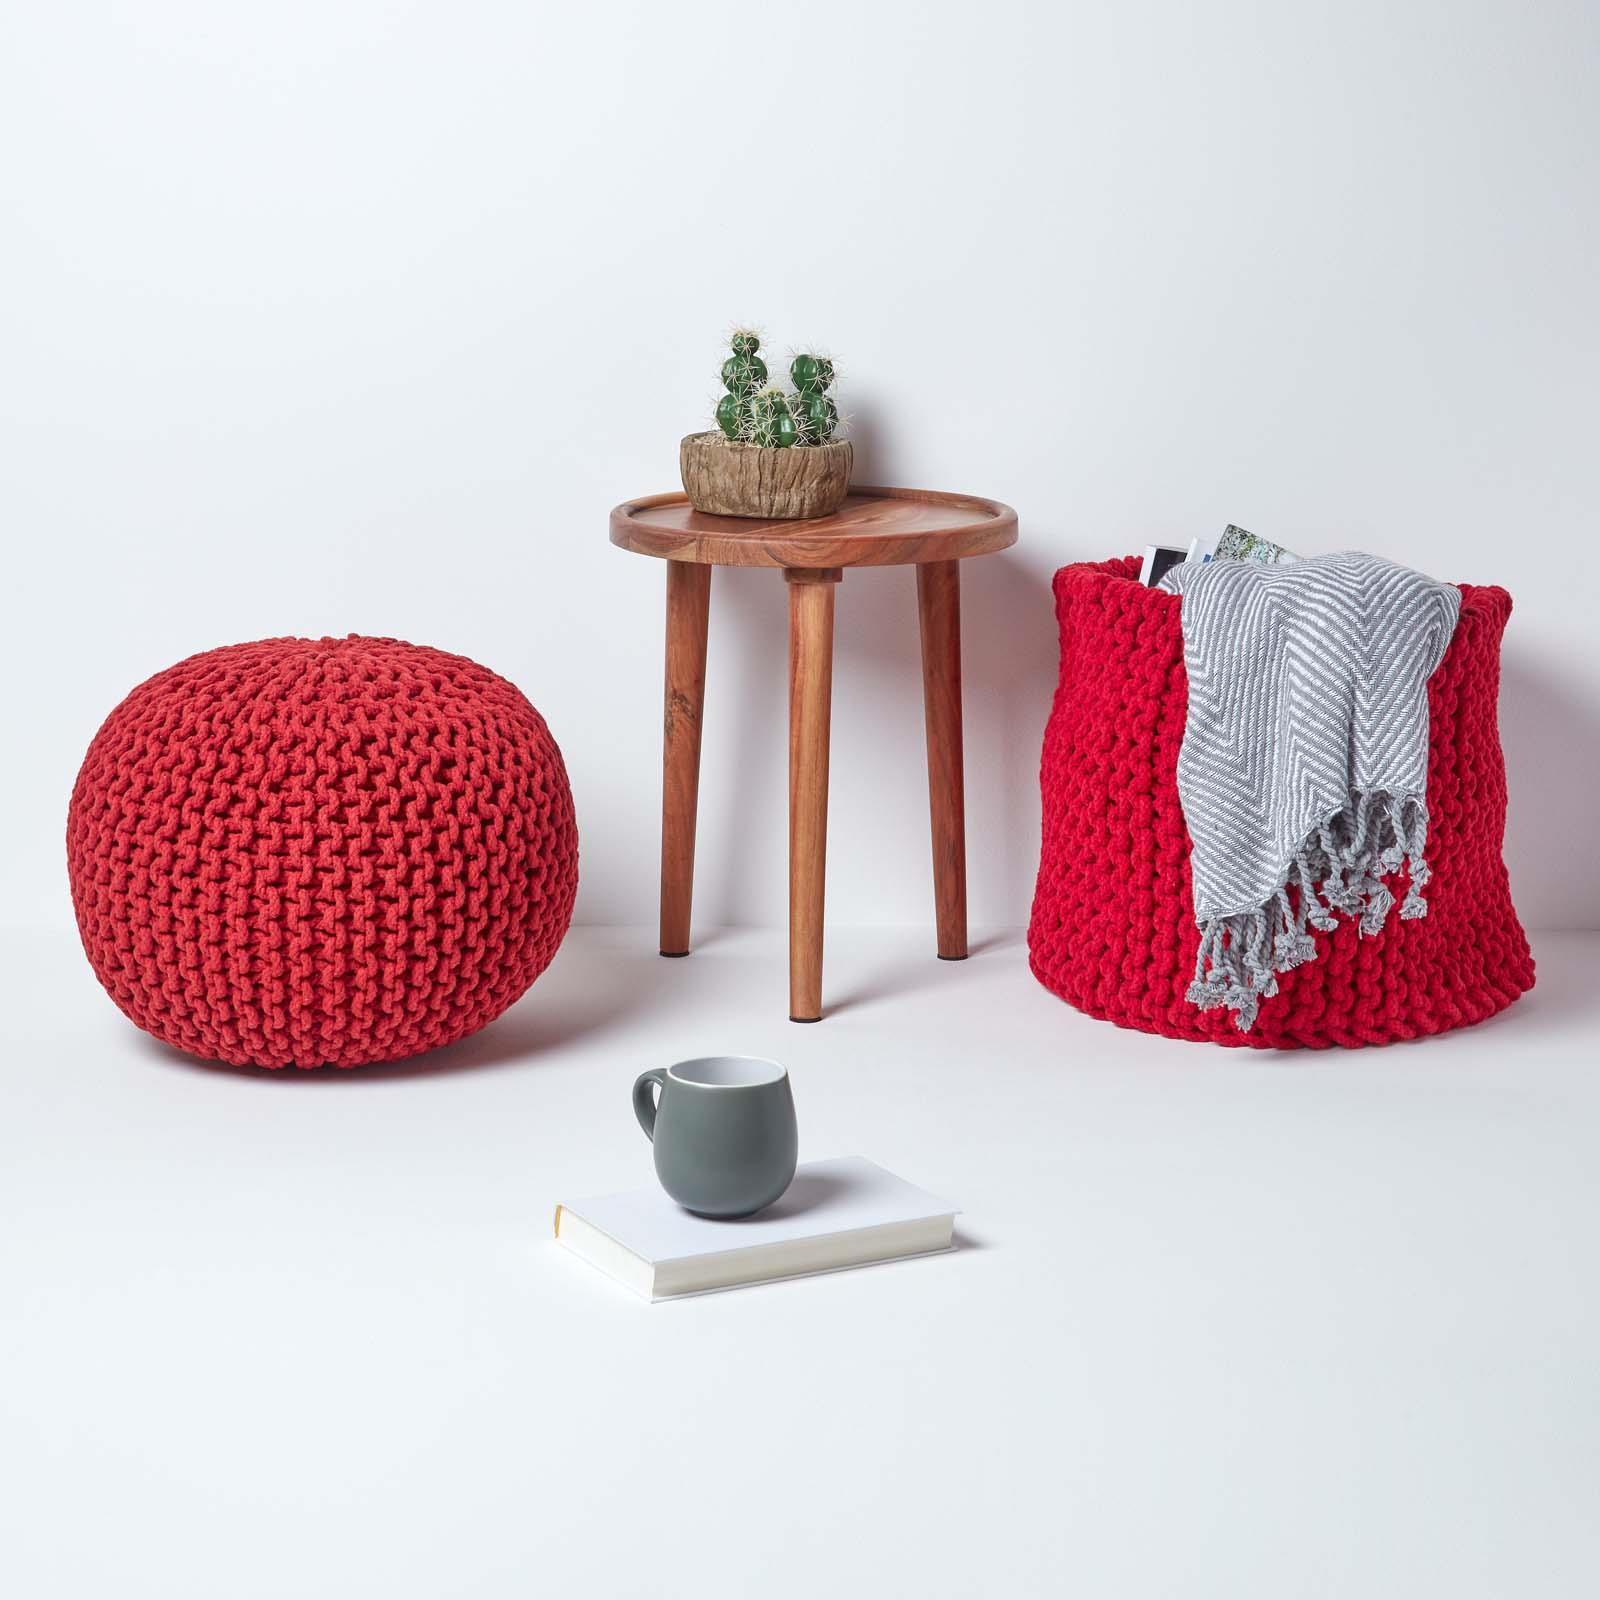 Hand-Knitted-100-Cotton-Pouffes-Round-Sphere-Or-Cube-Square-Chunky-Footstools thumbnail 175